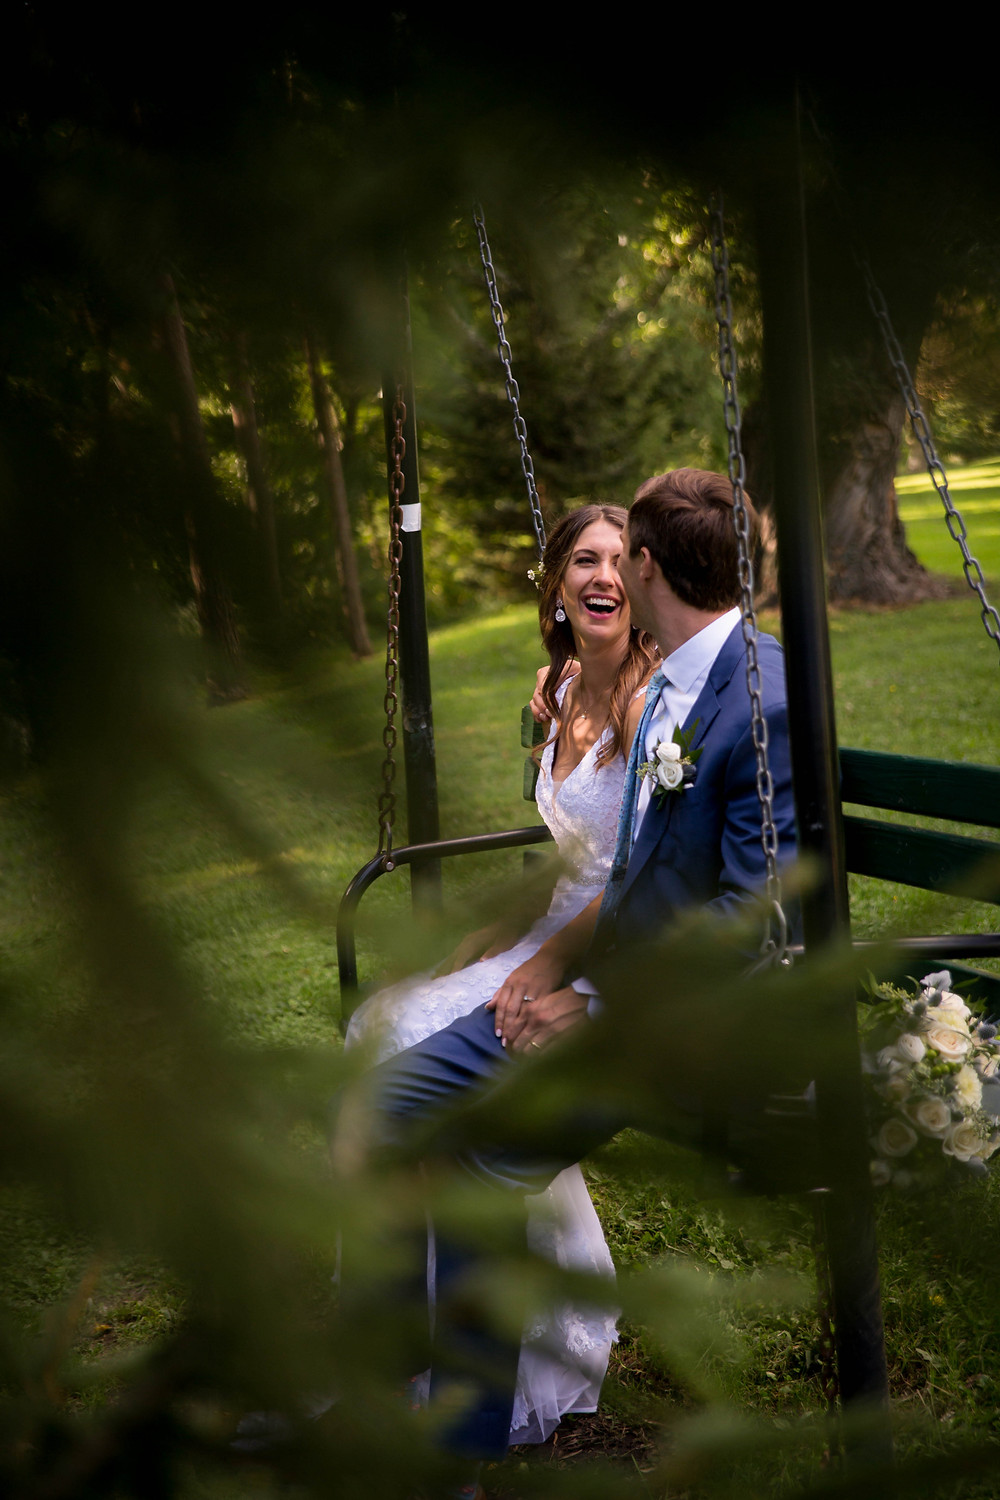 bride and groom Island Park Williamsville NY wedding day bridal portrait